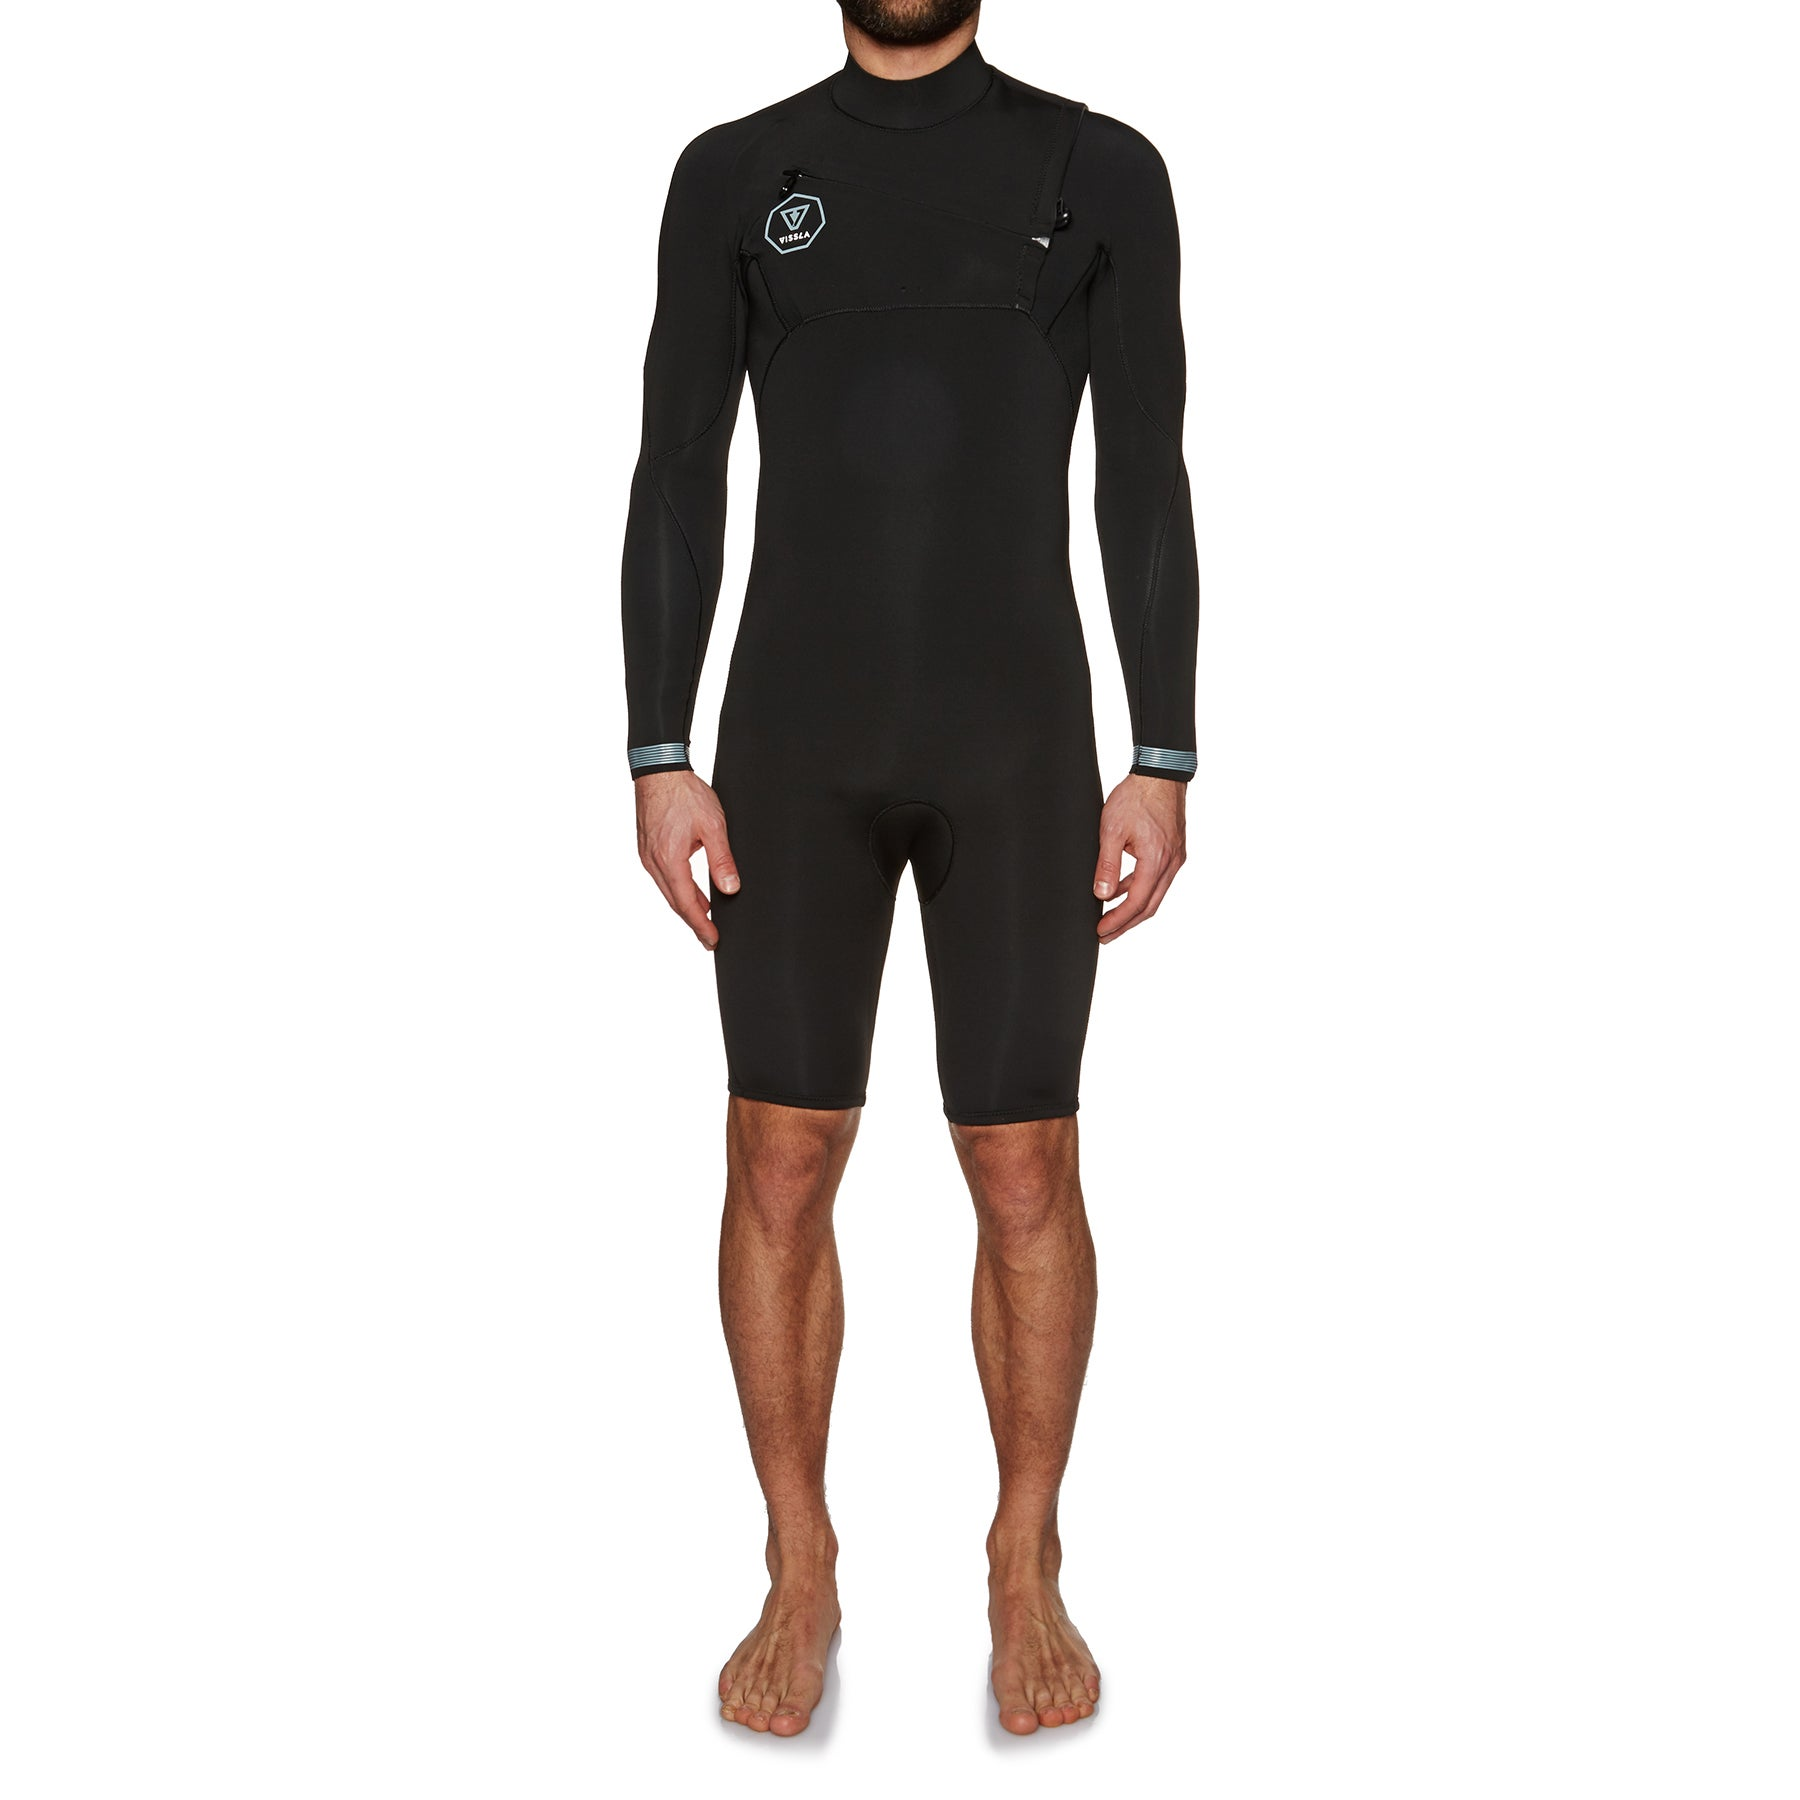 Vissla 7 Seas 2mm Chest Zip Long Sleeve Shorty Wetsuit - Black Fade